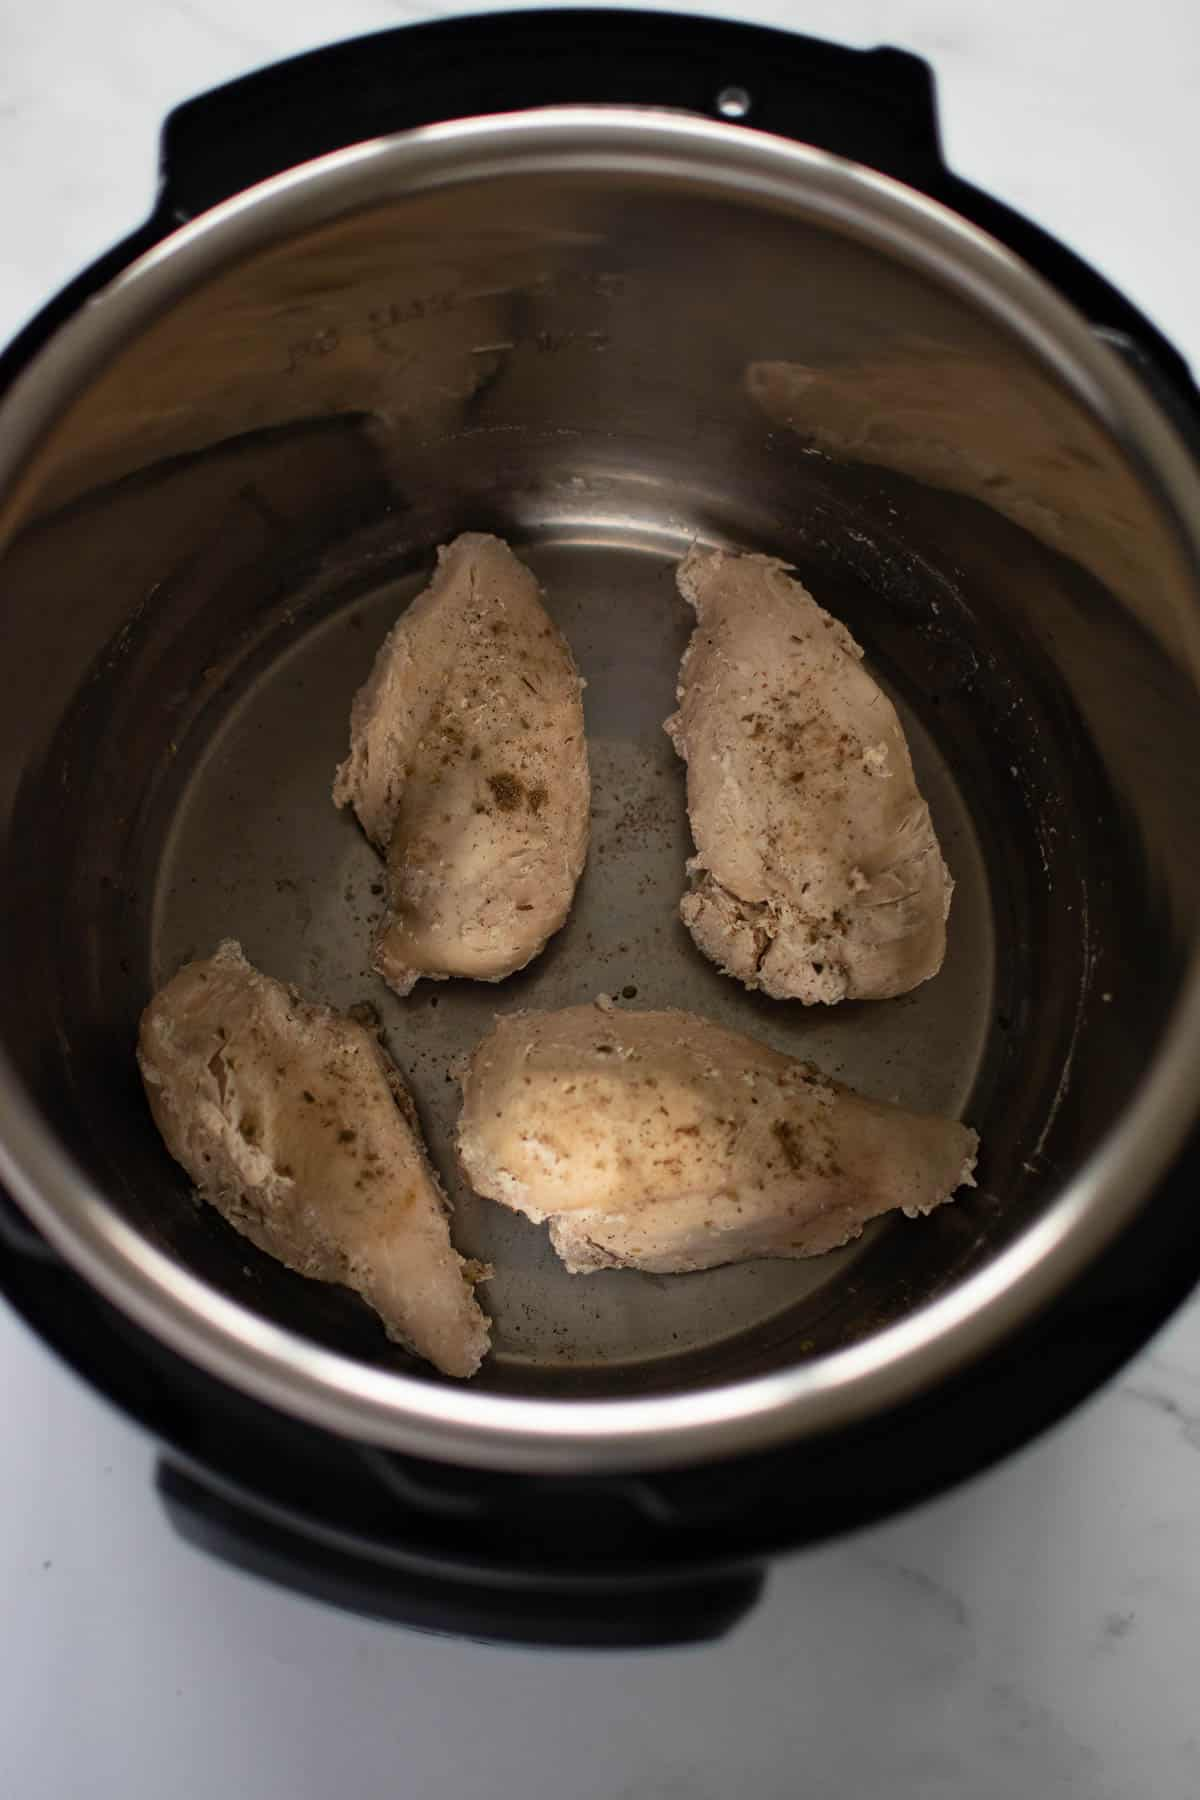 Cooked chicken breasts in an instant pot.